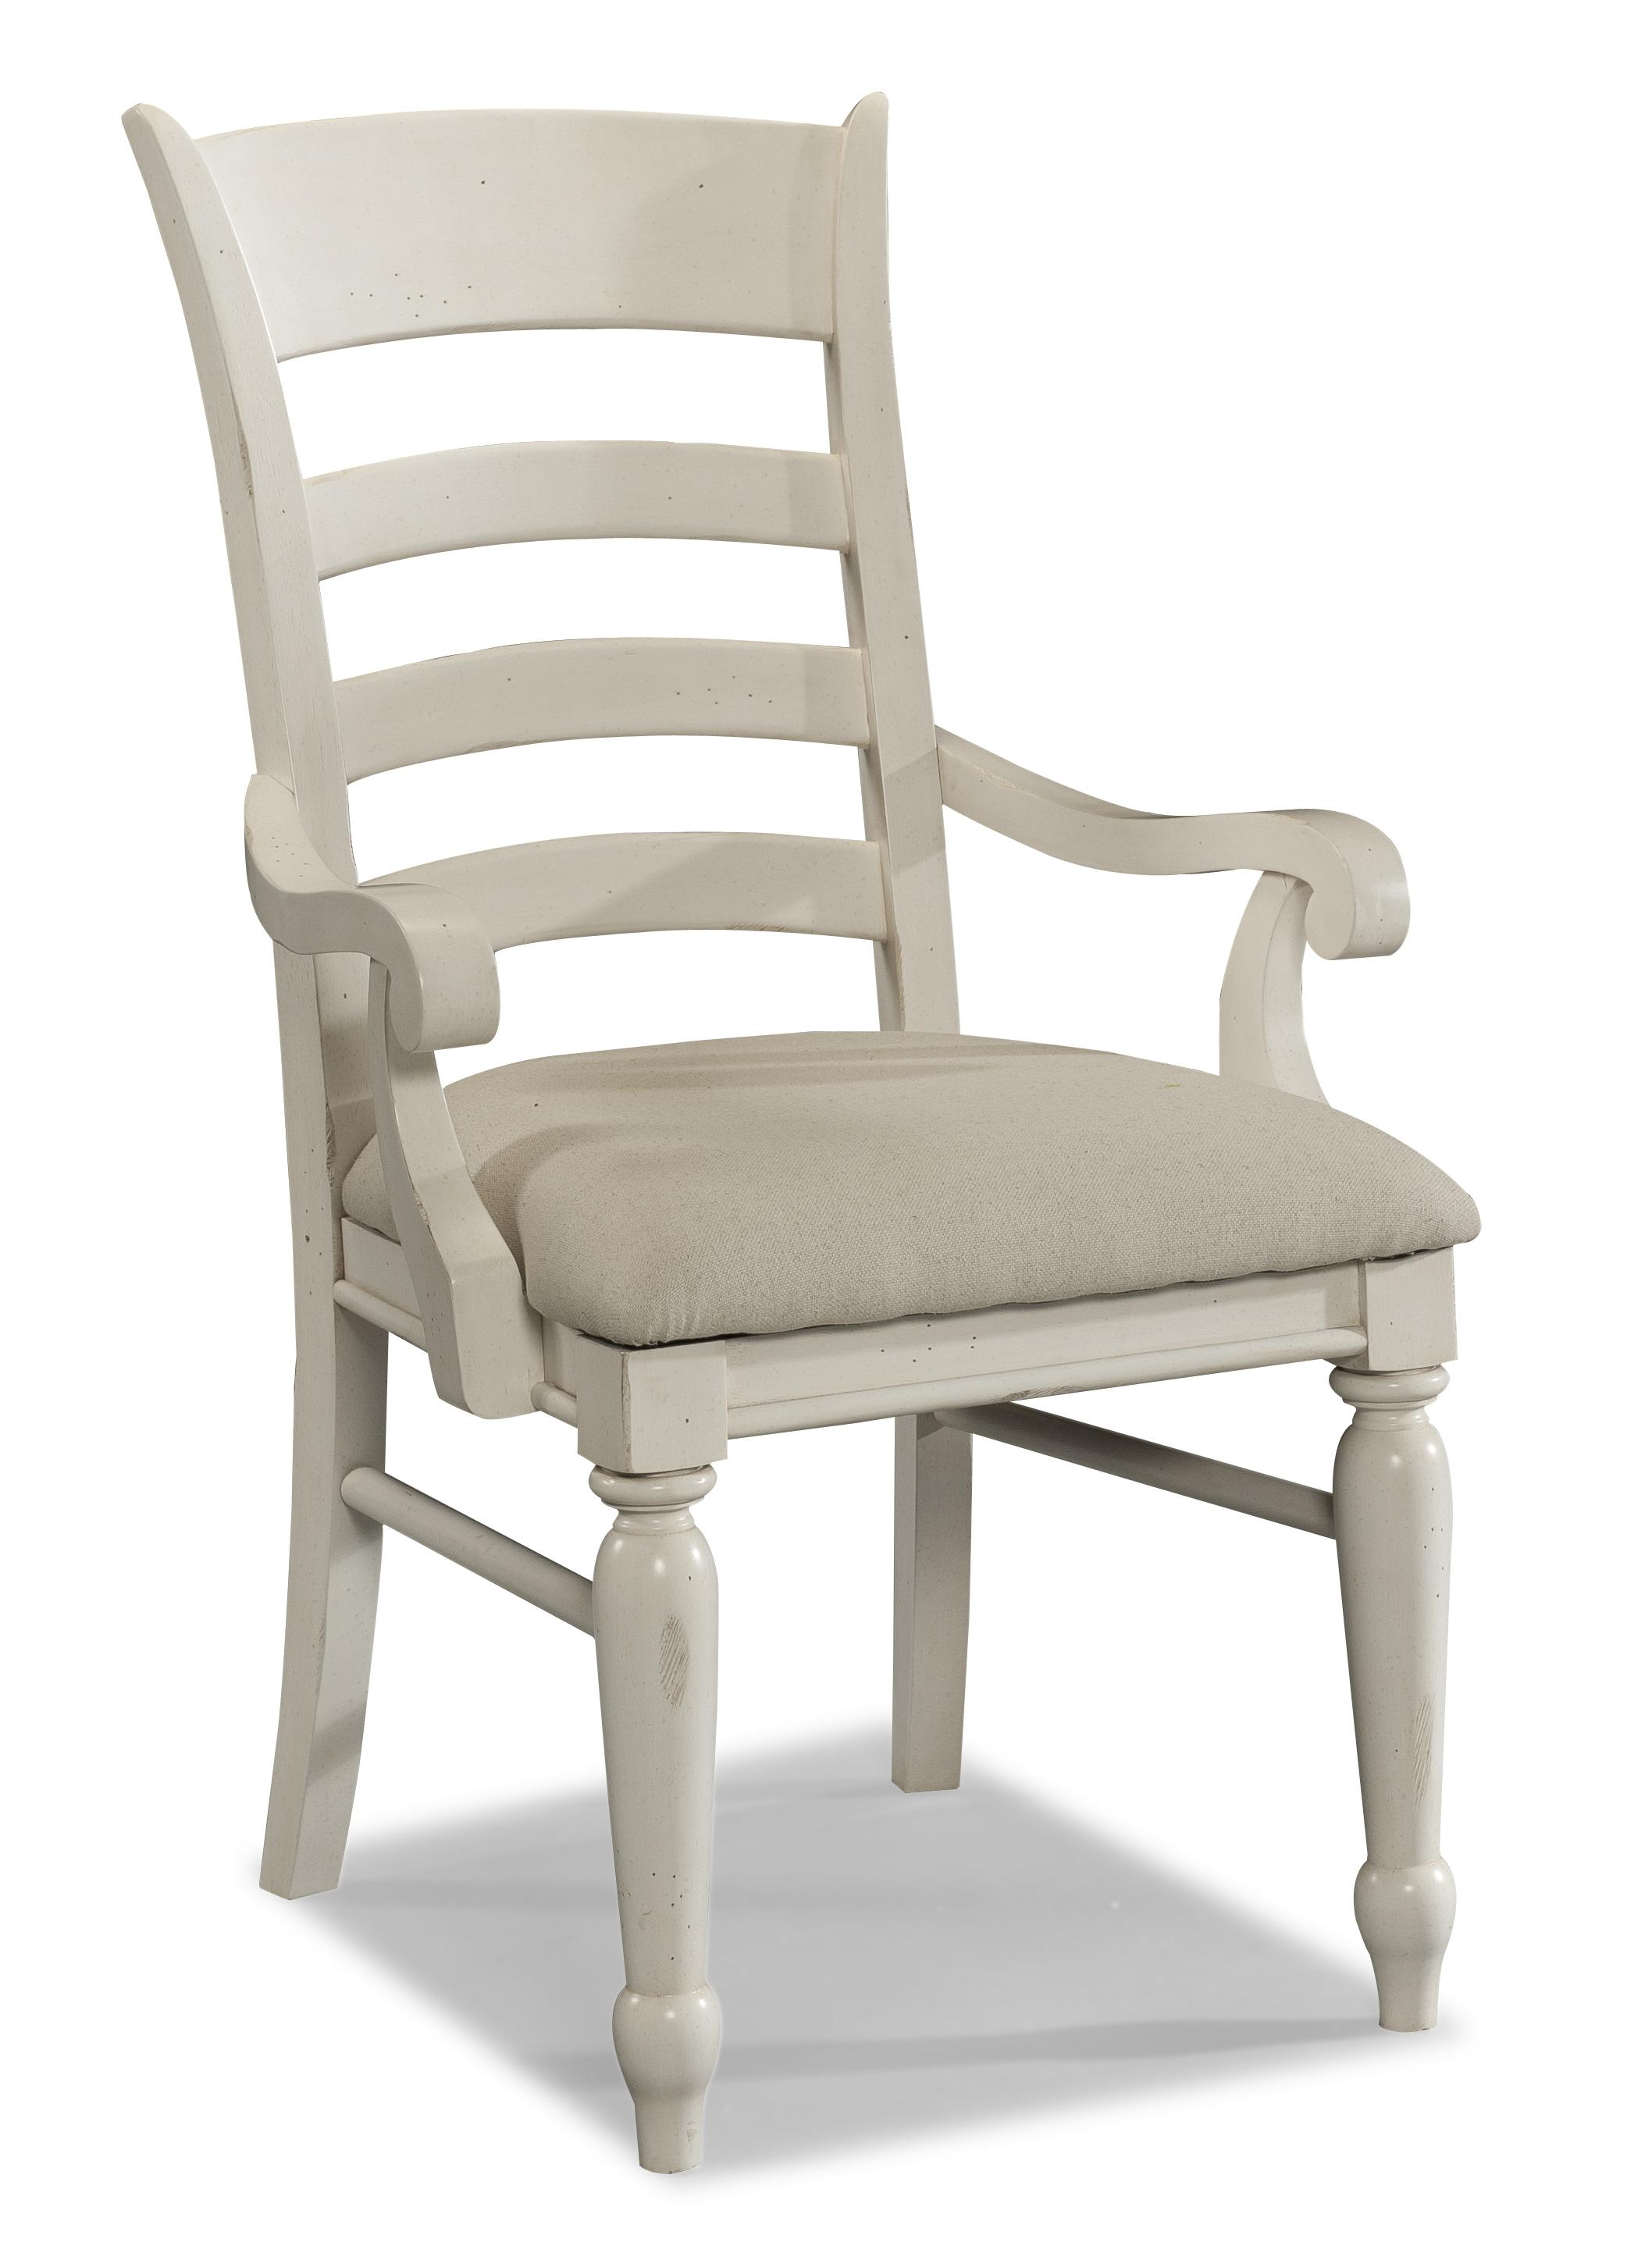 White Ladder Back Chair Carolina Preserves By Klaussner Sea Breeze 424 906 Drc